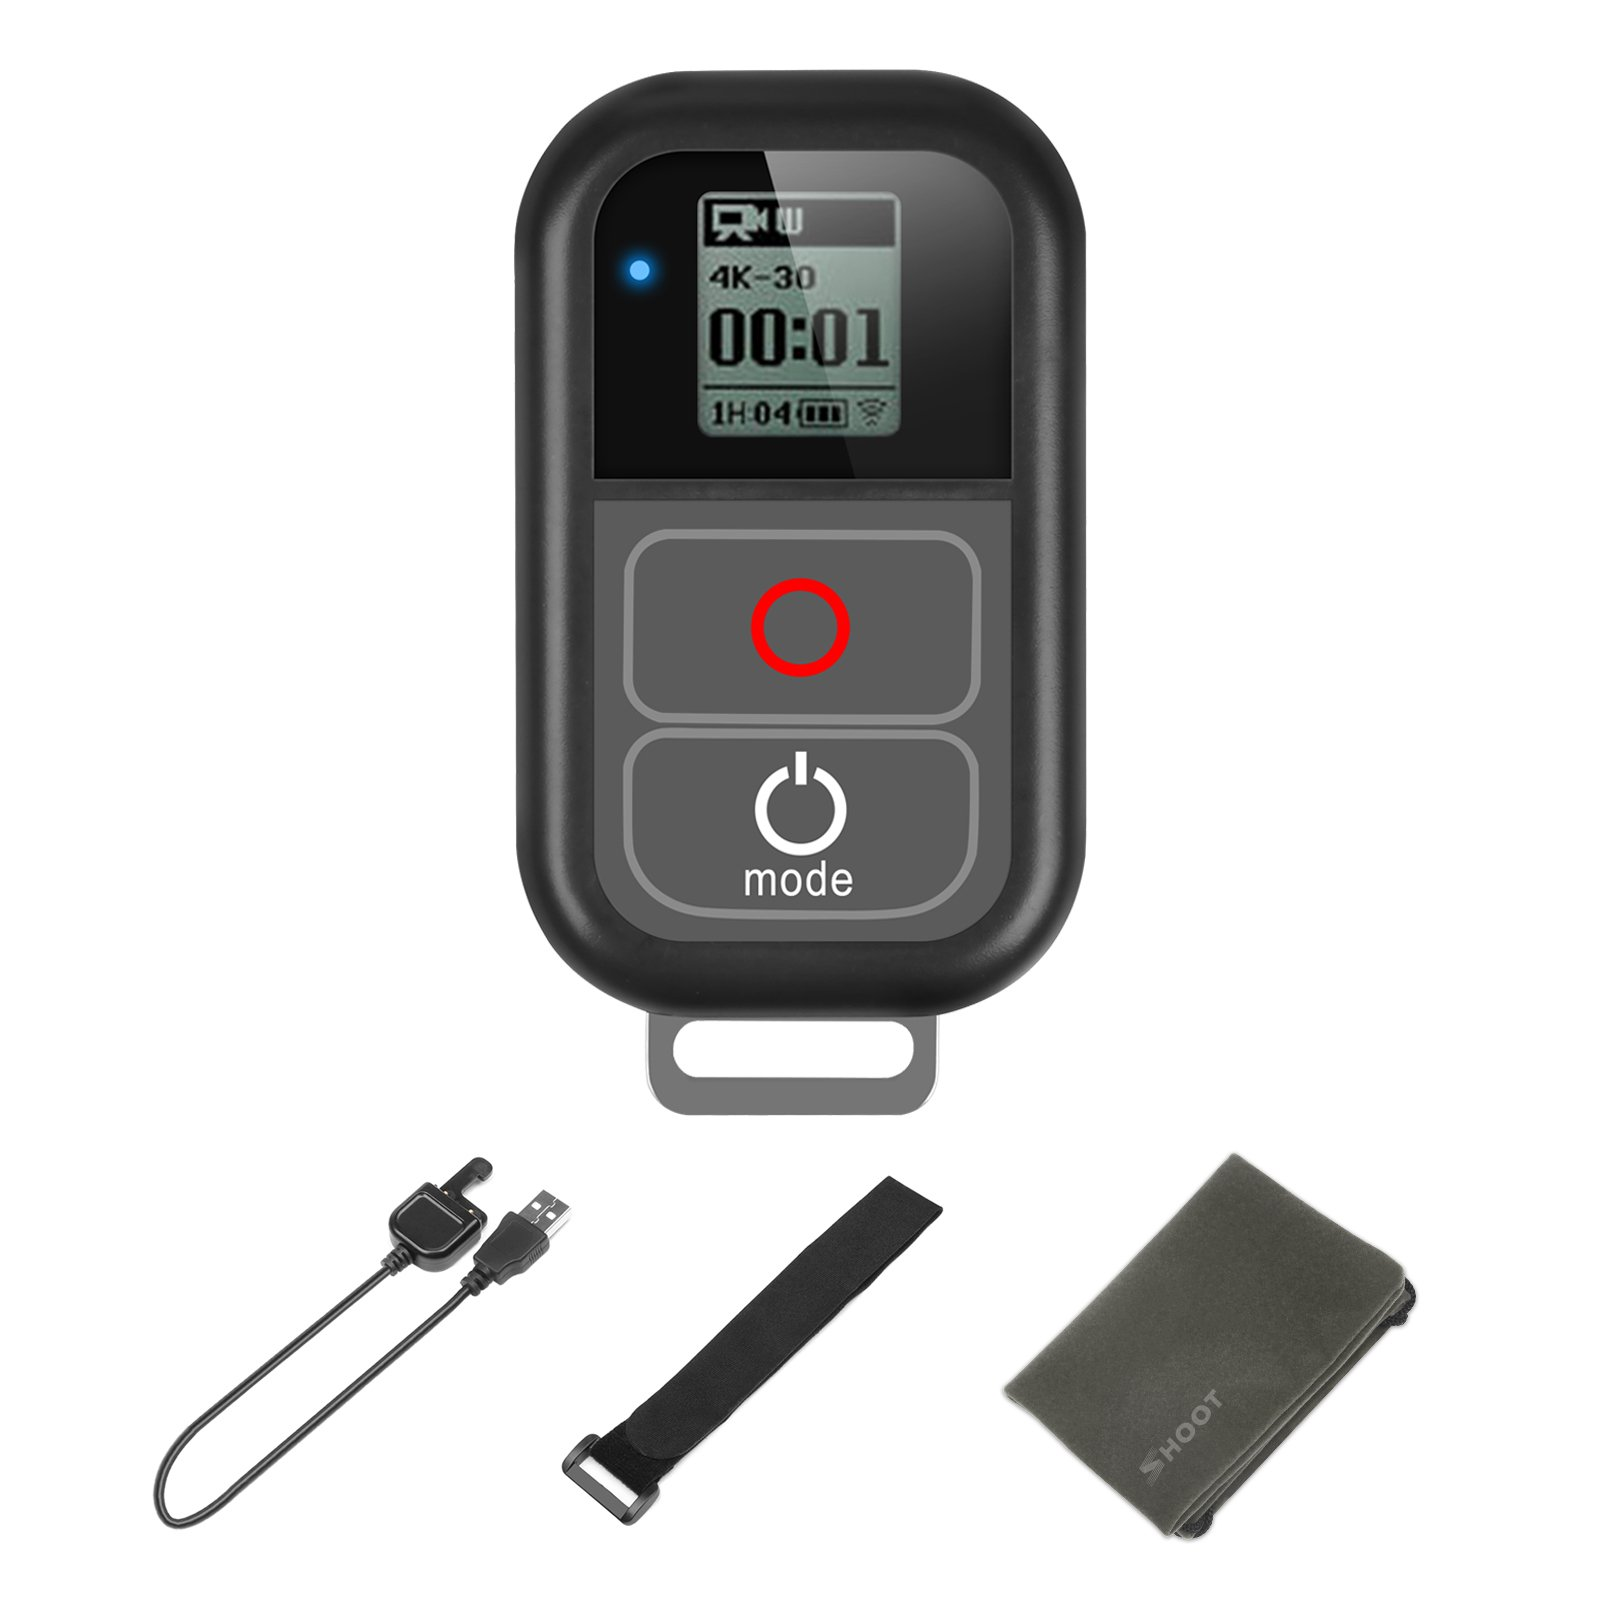 SHOOT (Waterproof up to 5m) Smart Remote Control for GoPro HERO 7 Black,6,5,4,3,3+,2,1, Hero + LCD, 4 Session, 5 Session,LCD Screen,Wi-Fi,Wirless,Built-in 500mah Battery Must Have Accessories